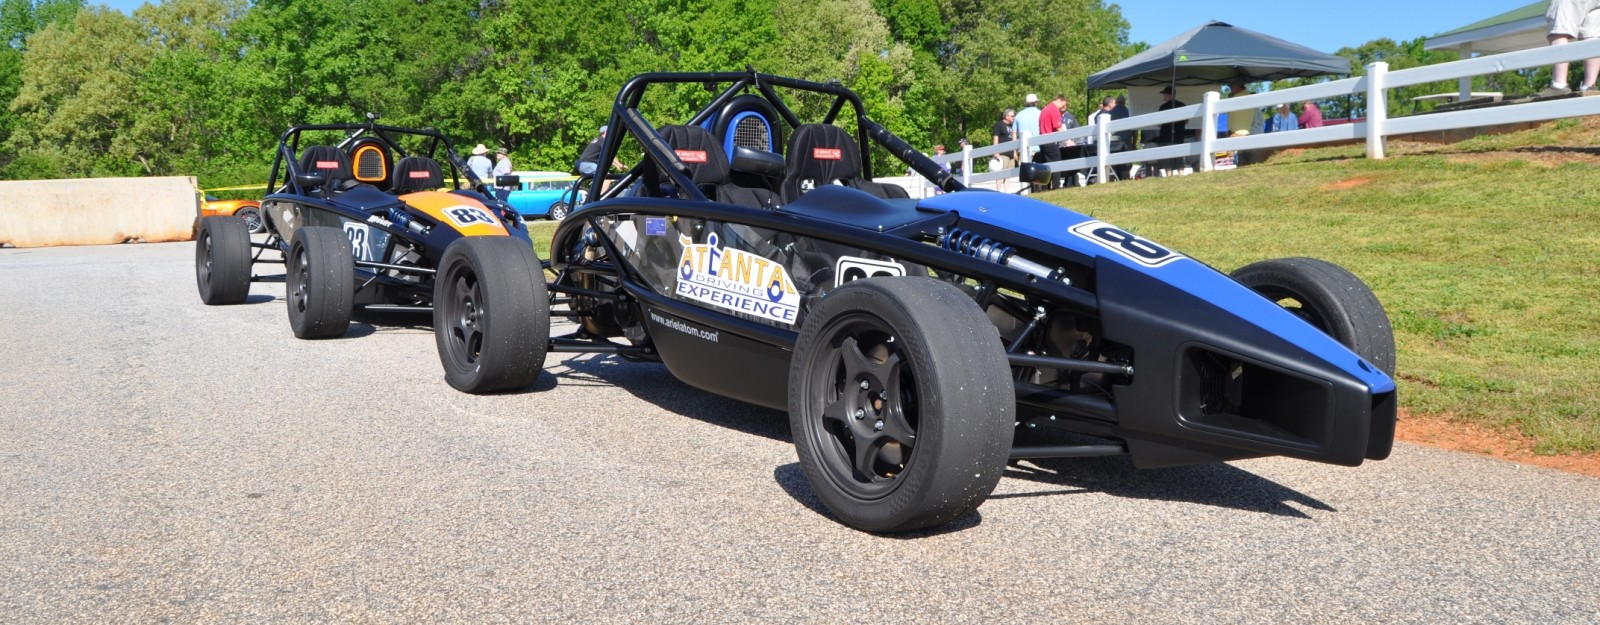 Ariel Atom Duo on Slicks at the Road Atlanta Skidpad for ATL Driving Experience 6